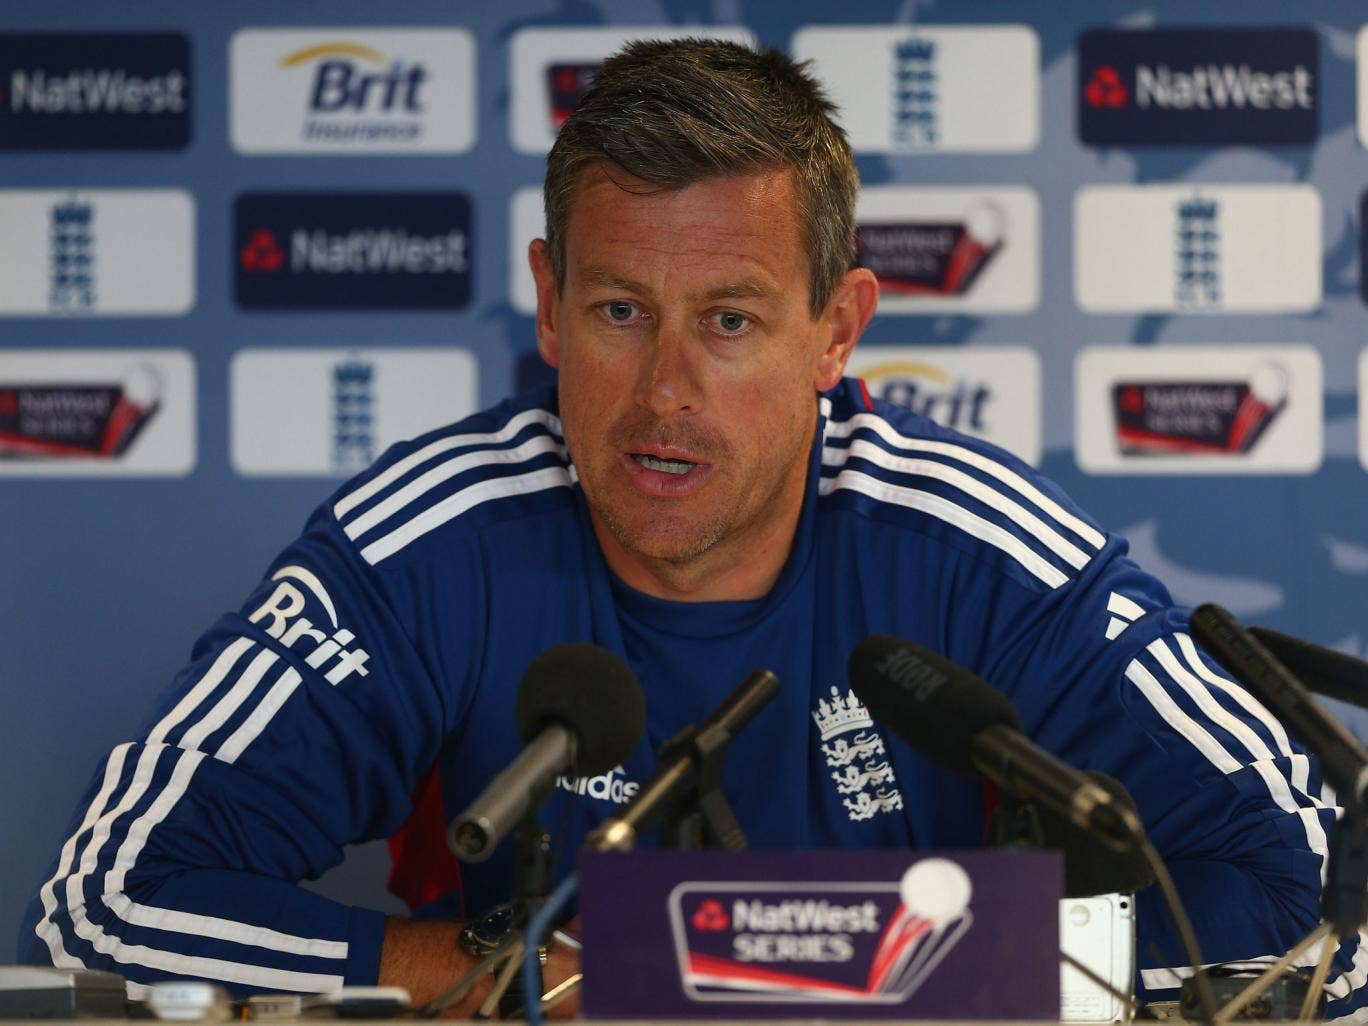 Ashley Giles (Odds: Evens) Age 40 Nationality English Experience Ex-England player; Warwickshire coach; now England limited-overs head coach